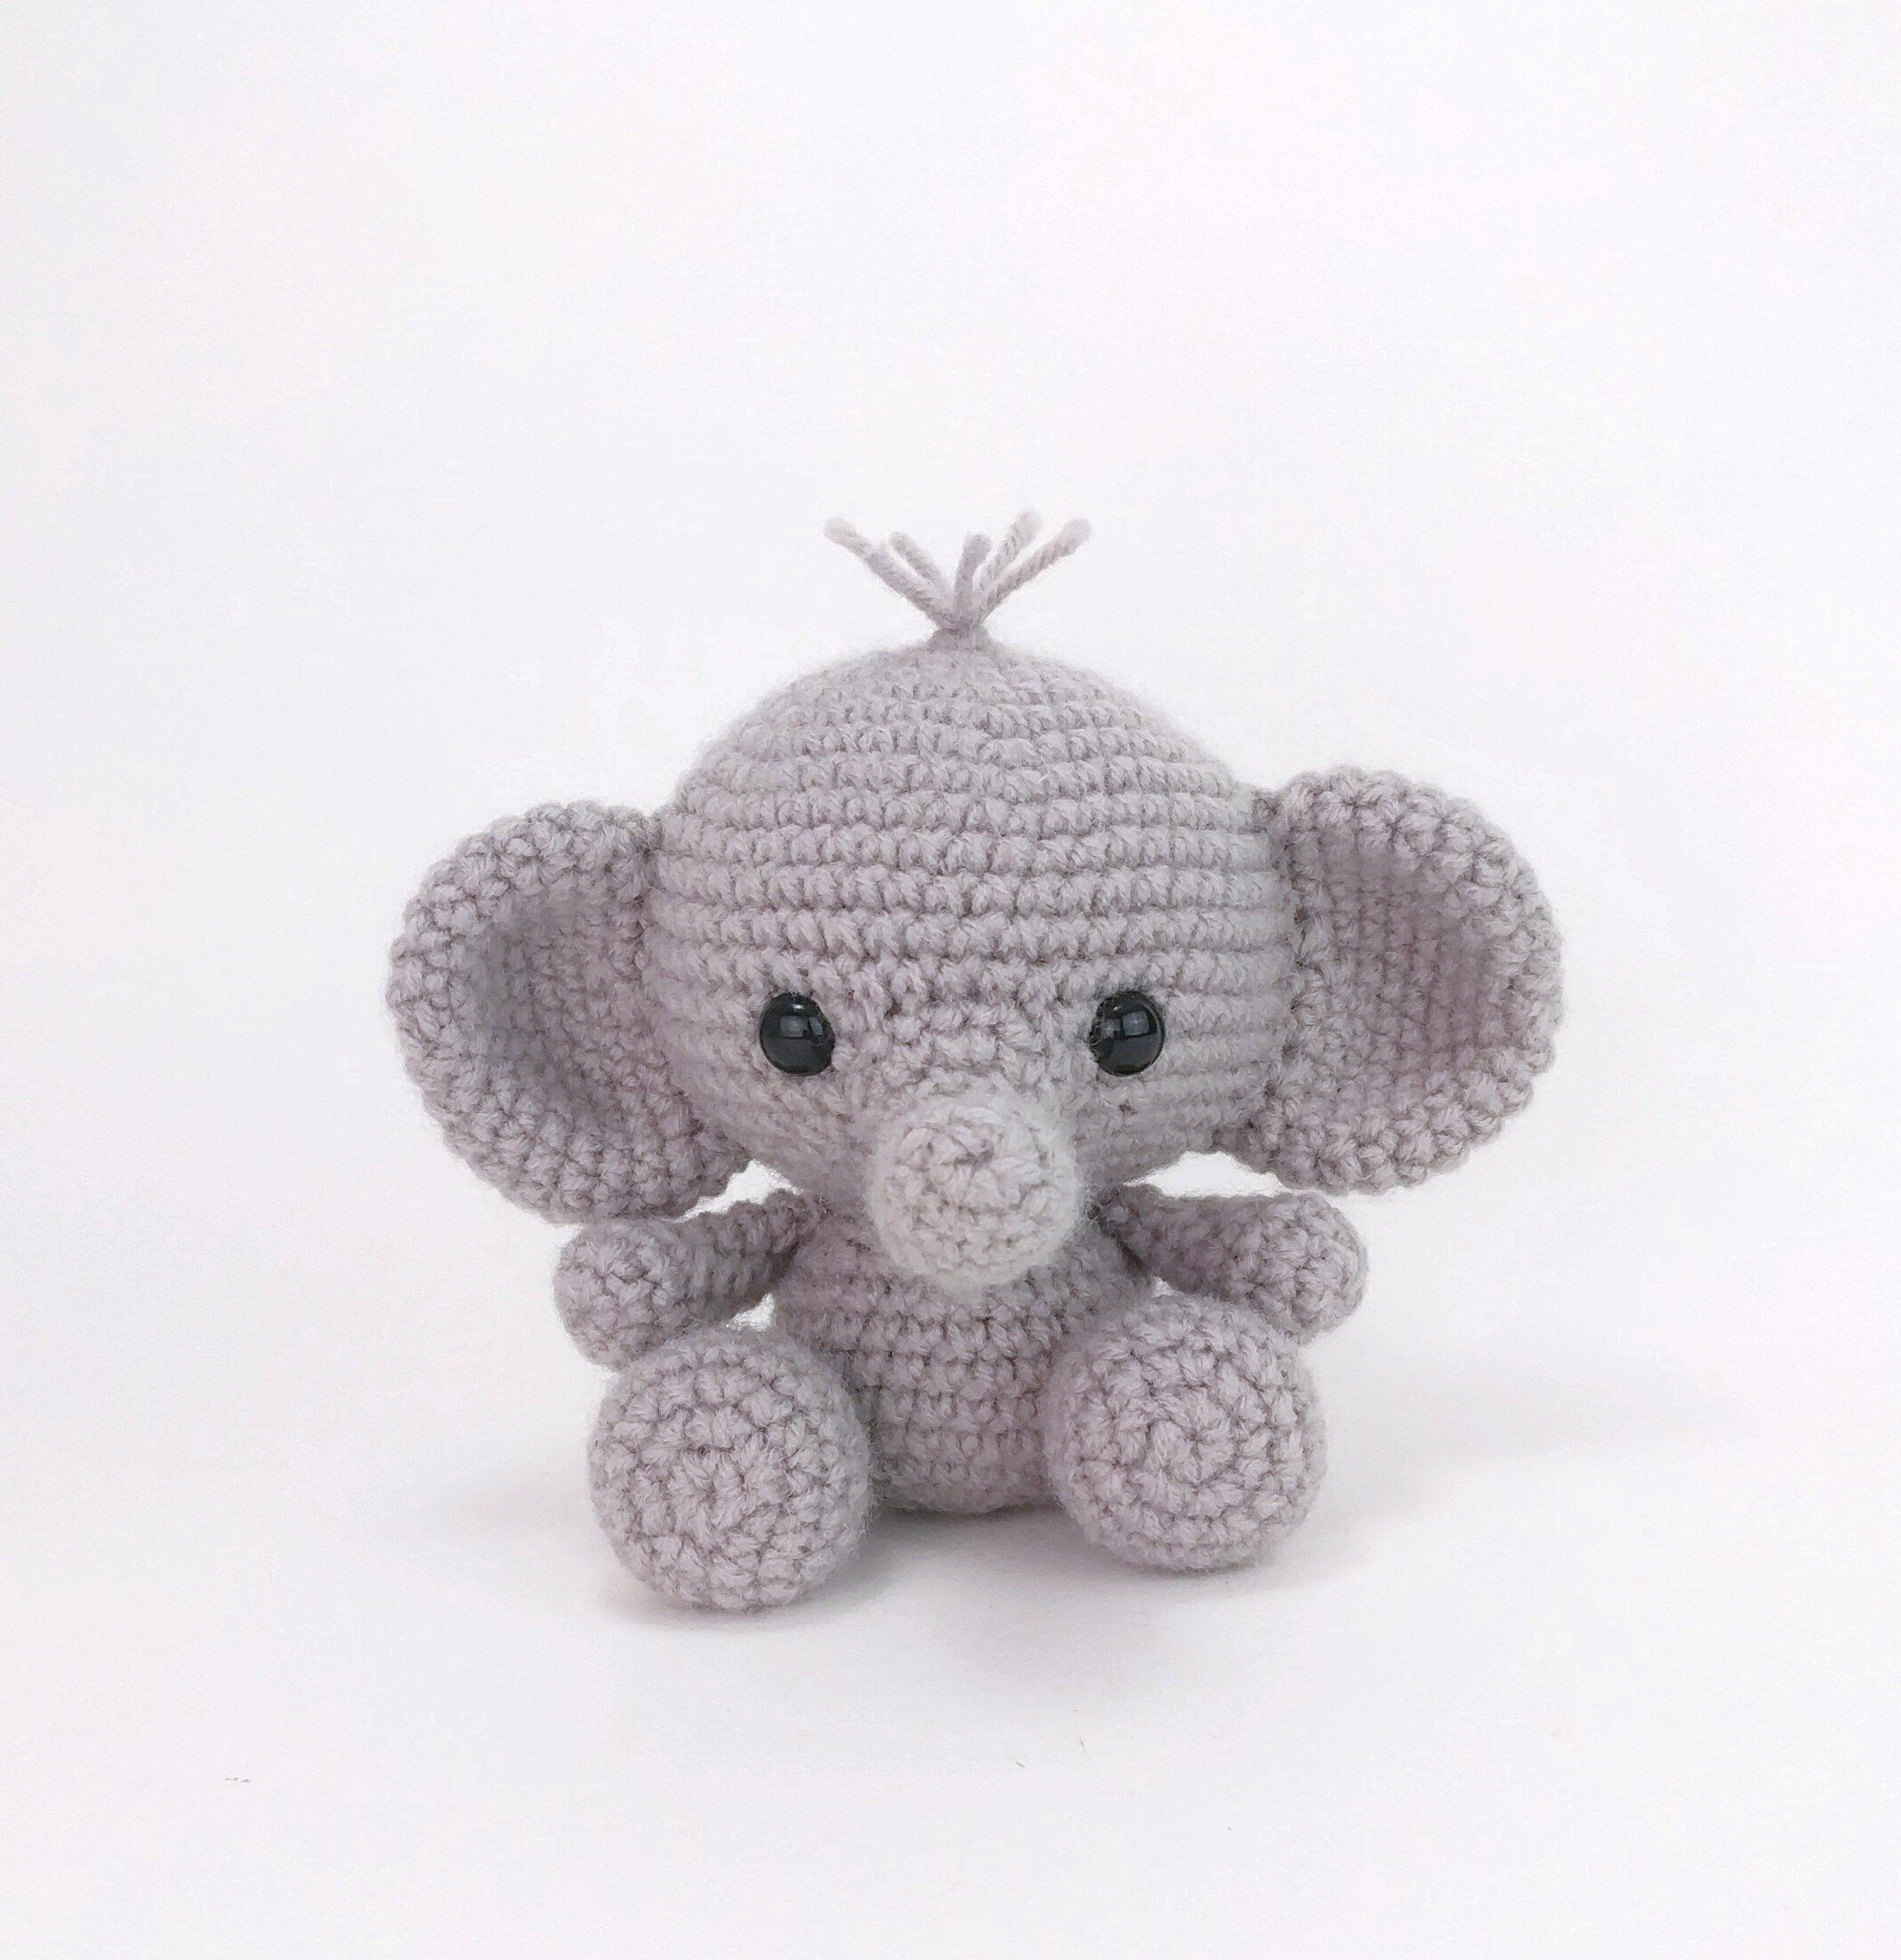 PATTERN: Ellis the Elephant - crochet elephant pattern - amigurumi elephant pattern - English, German, Portuguese - PDF crochet pattern #crochetelephantpattern